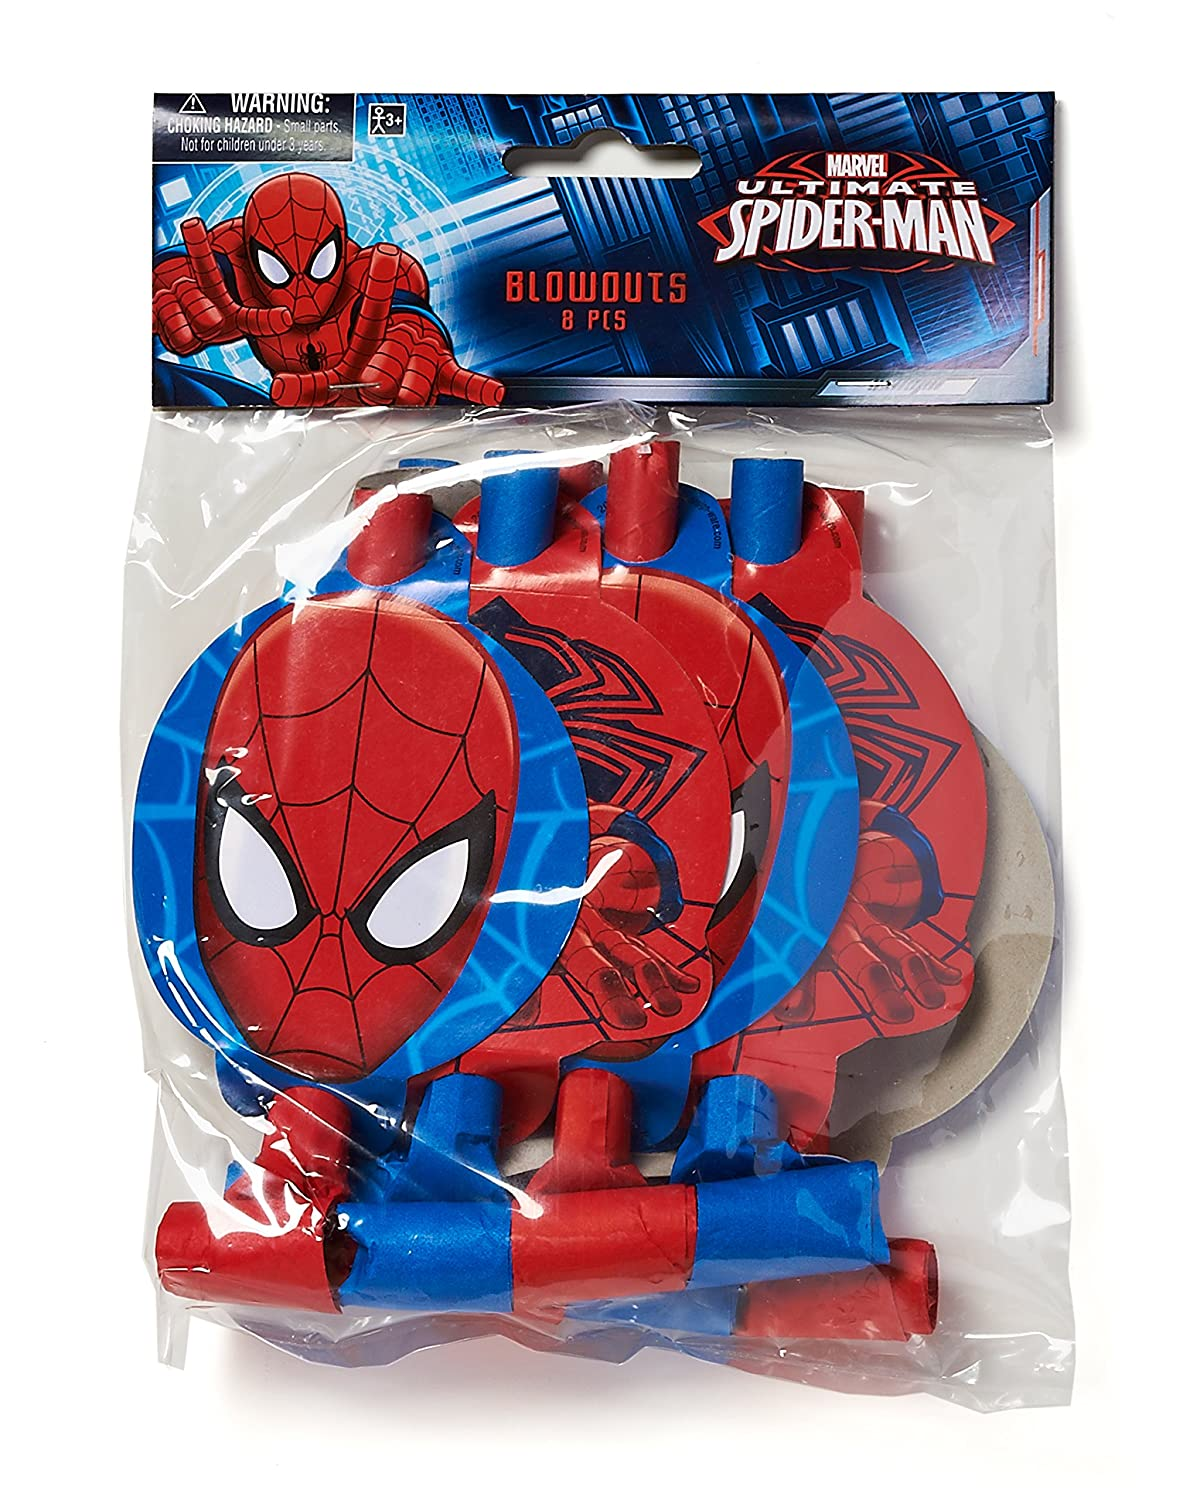 Toys AM-331355 Party Supplies American Greetings Spider-Man Party Blowers Pack of 8